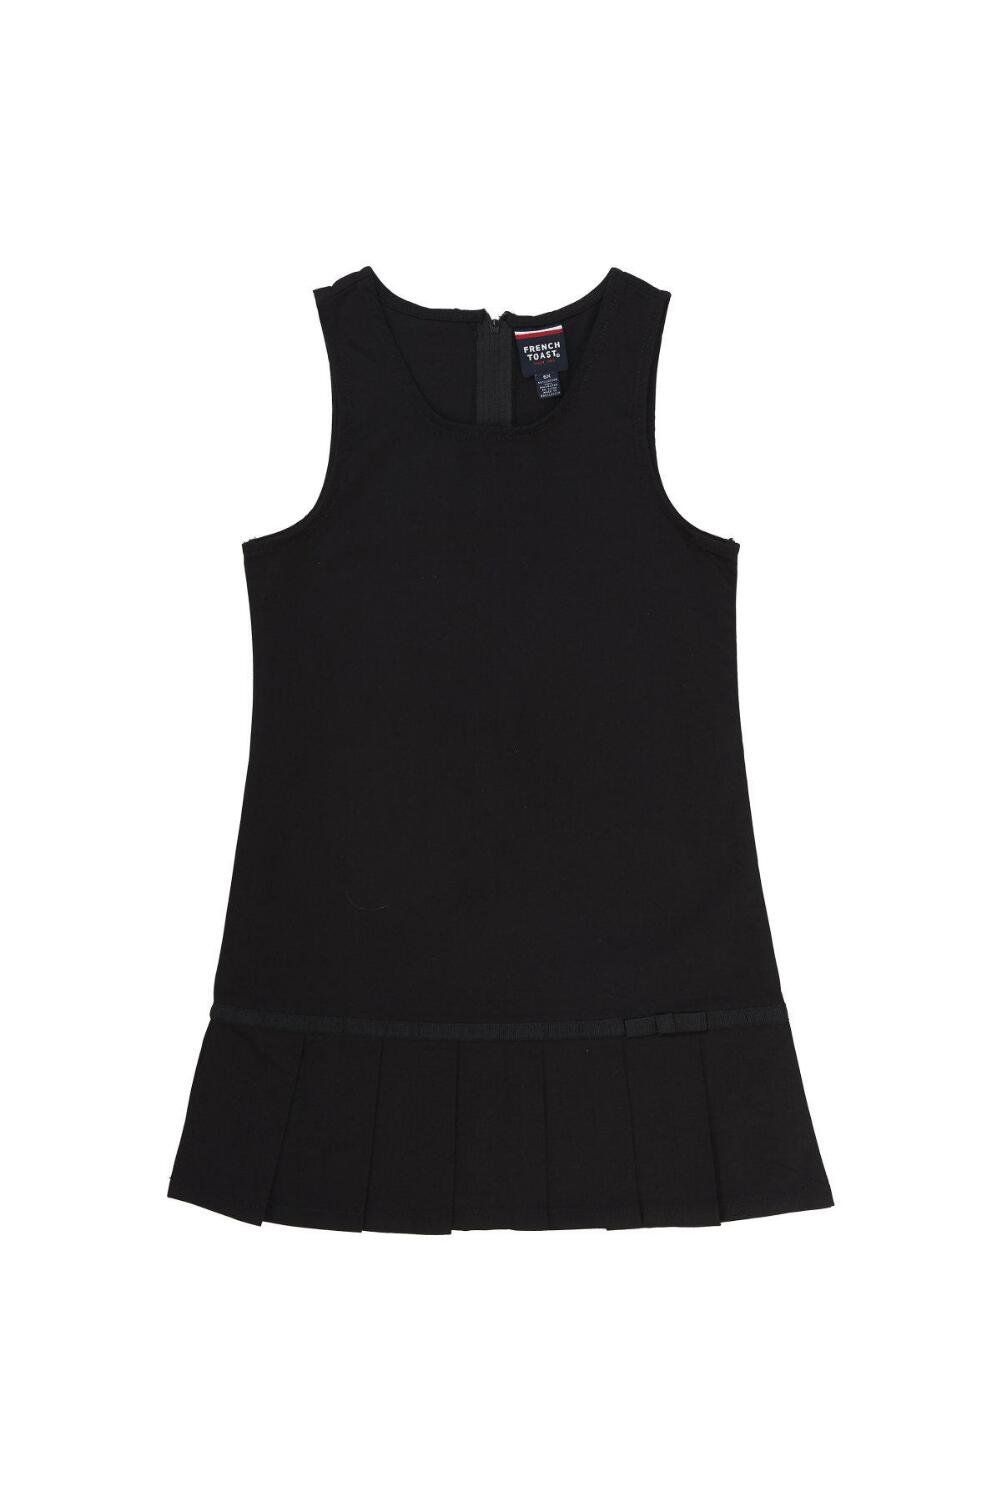 French Toast Big Girls' Pleated Hem Jumper with Ribbon, Black, 14